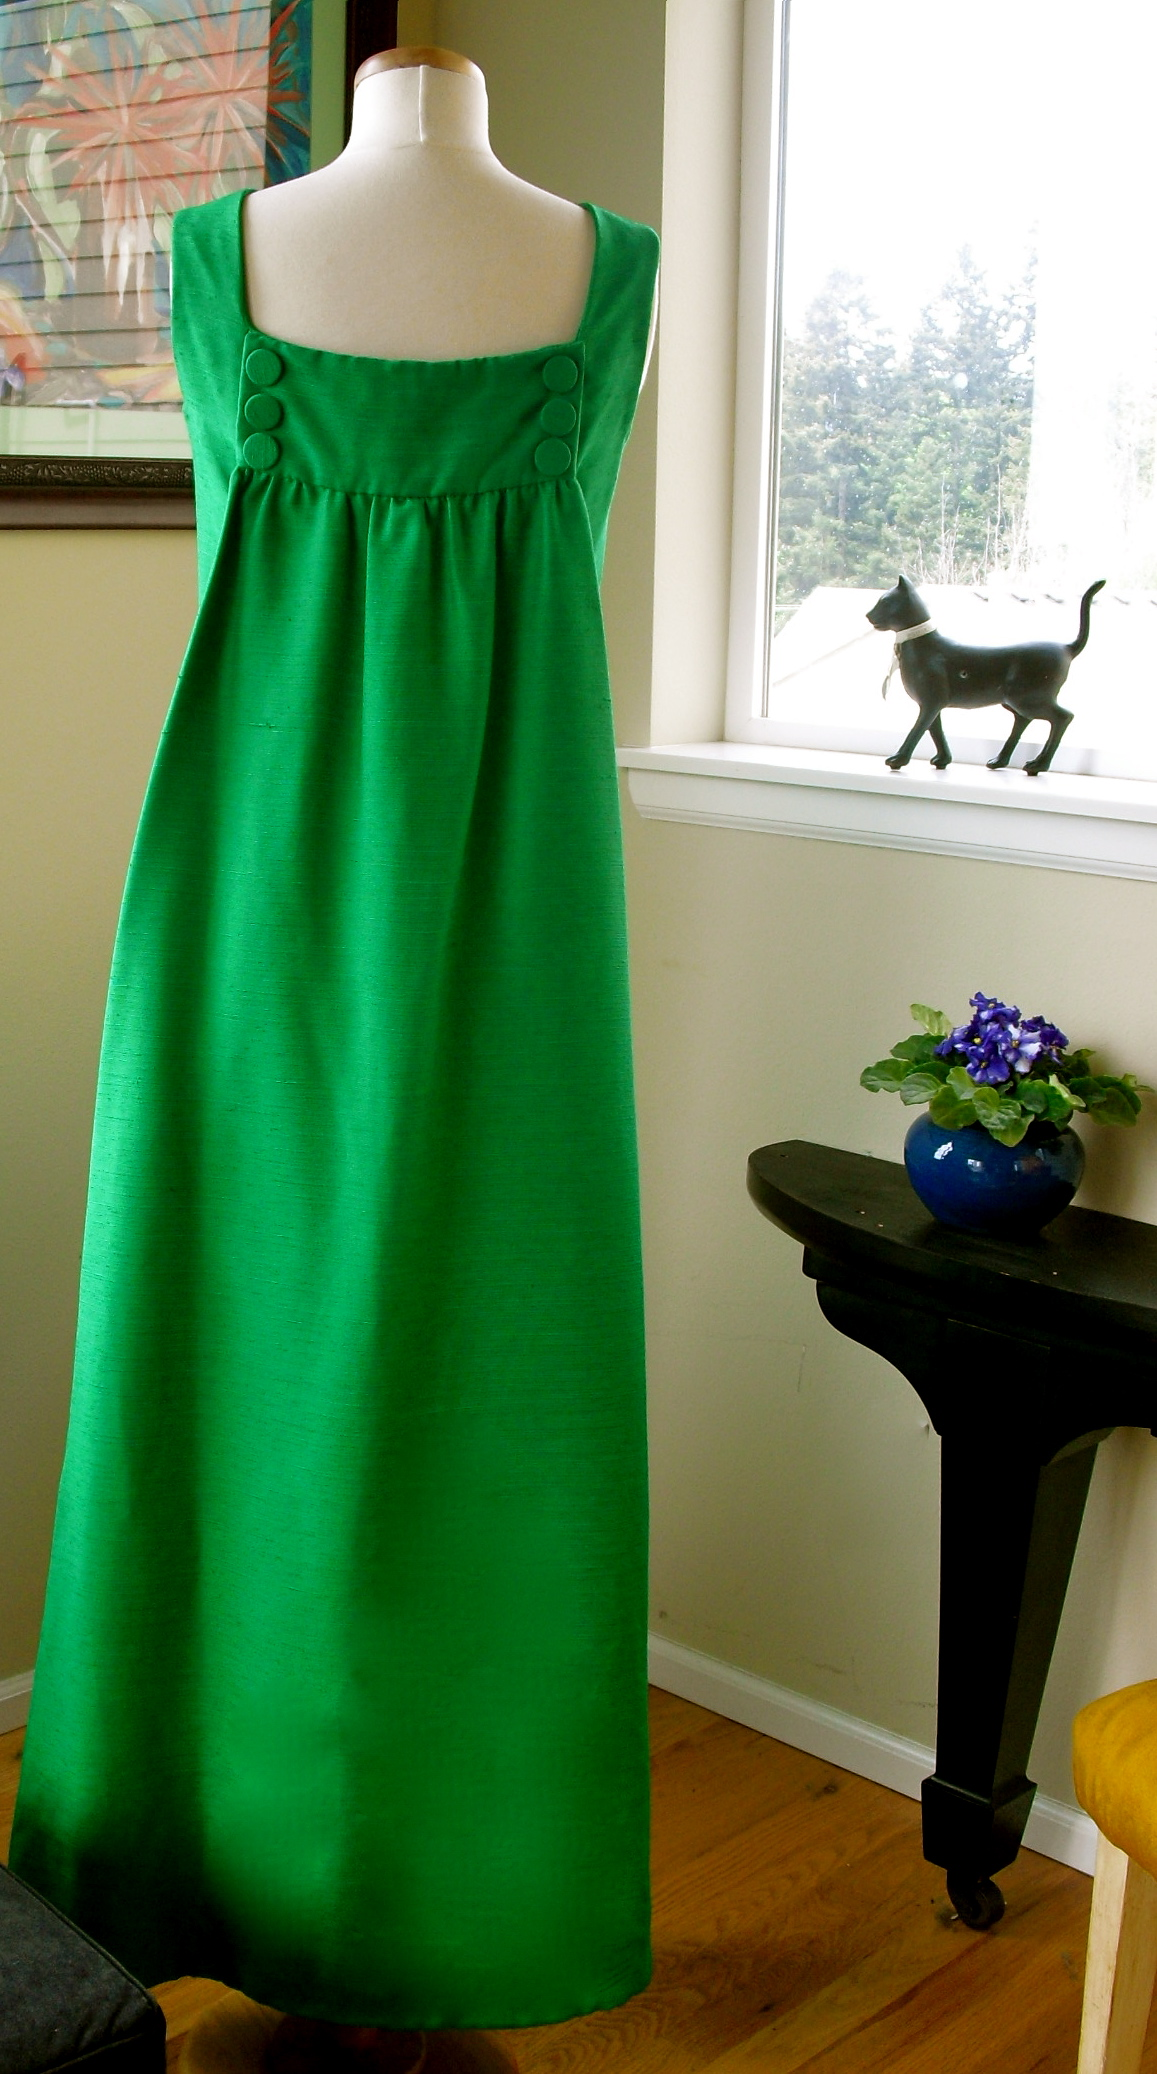 An Amazing Kelly Green Ball Gown From Emma Domb Circa 1960